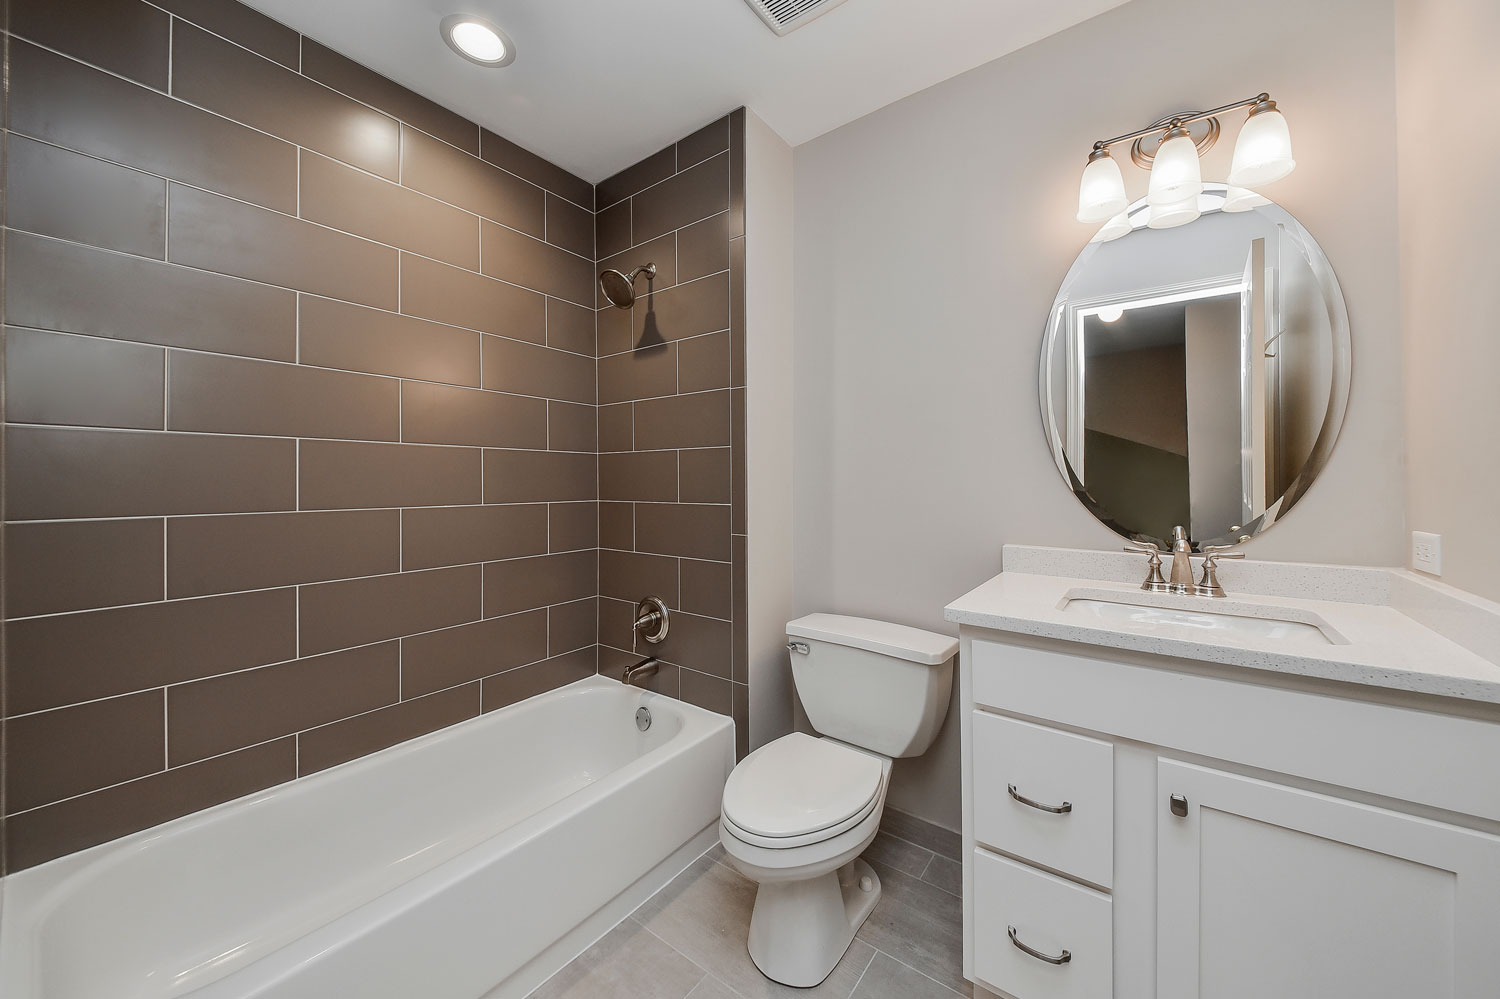 Charles cindy 39 s hall bathroom remodel pictures home for Bathroom design service